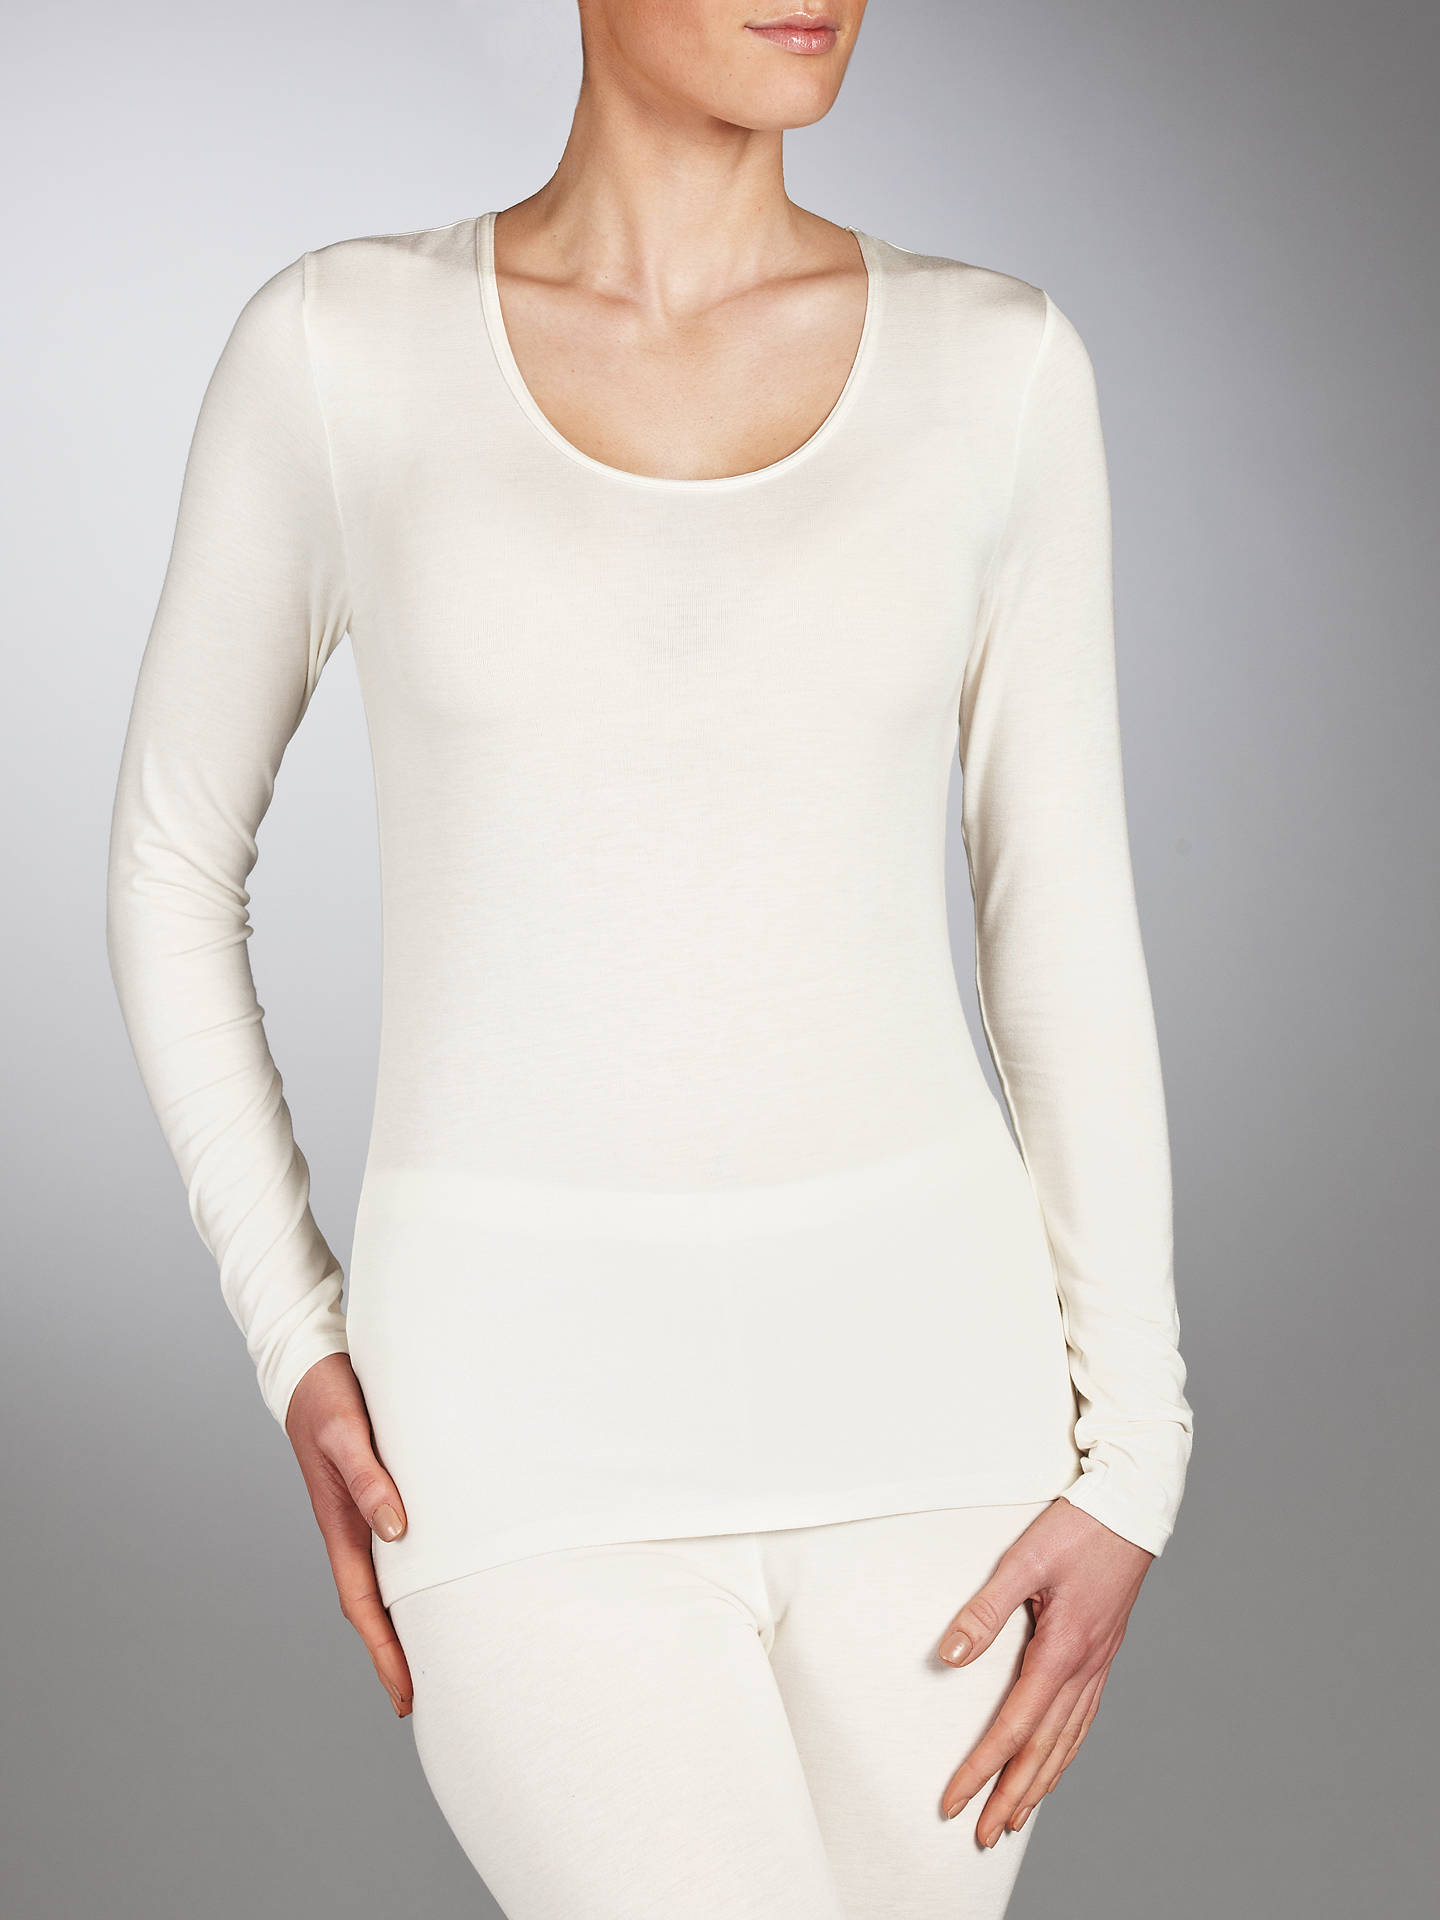 BuyJohn Lewis & Partners Long Sleeve Heat Generating Thermal Top, Ivory, 8-10 Online at johnlewis.com